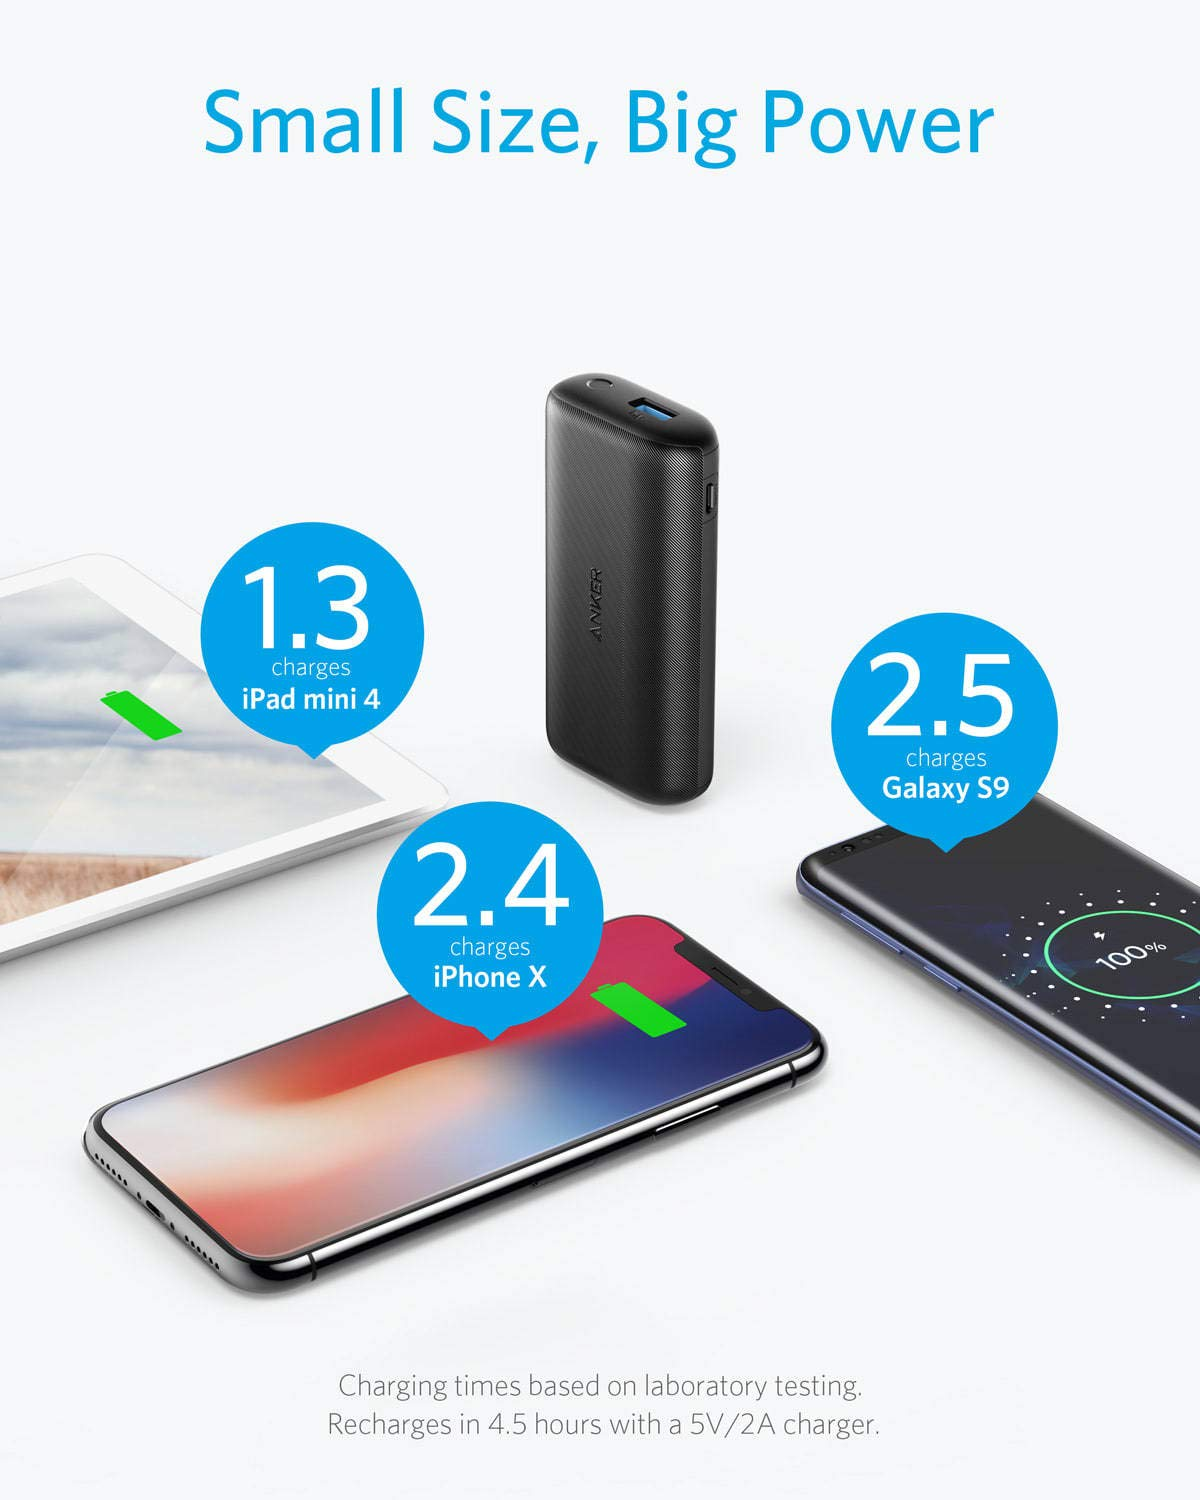 Anker-PowerCore-10000-Redux-Ultra-Small-Power-Bank-10000mAh-Portable-Charger-for-iPhone-Samsung-Galaxy-and-More